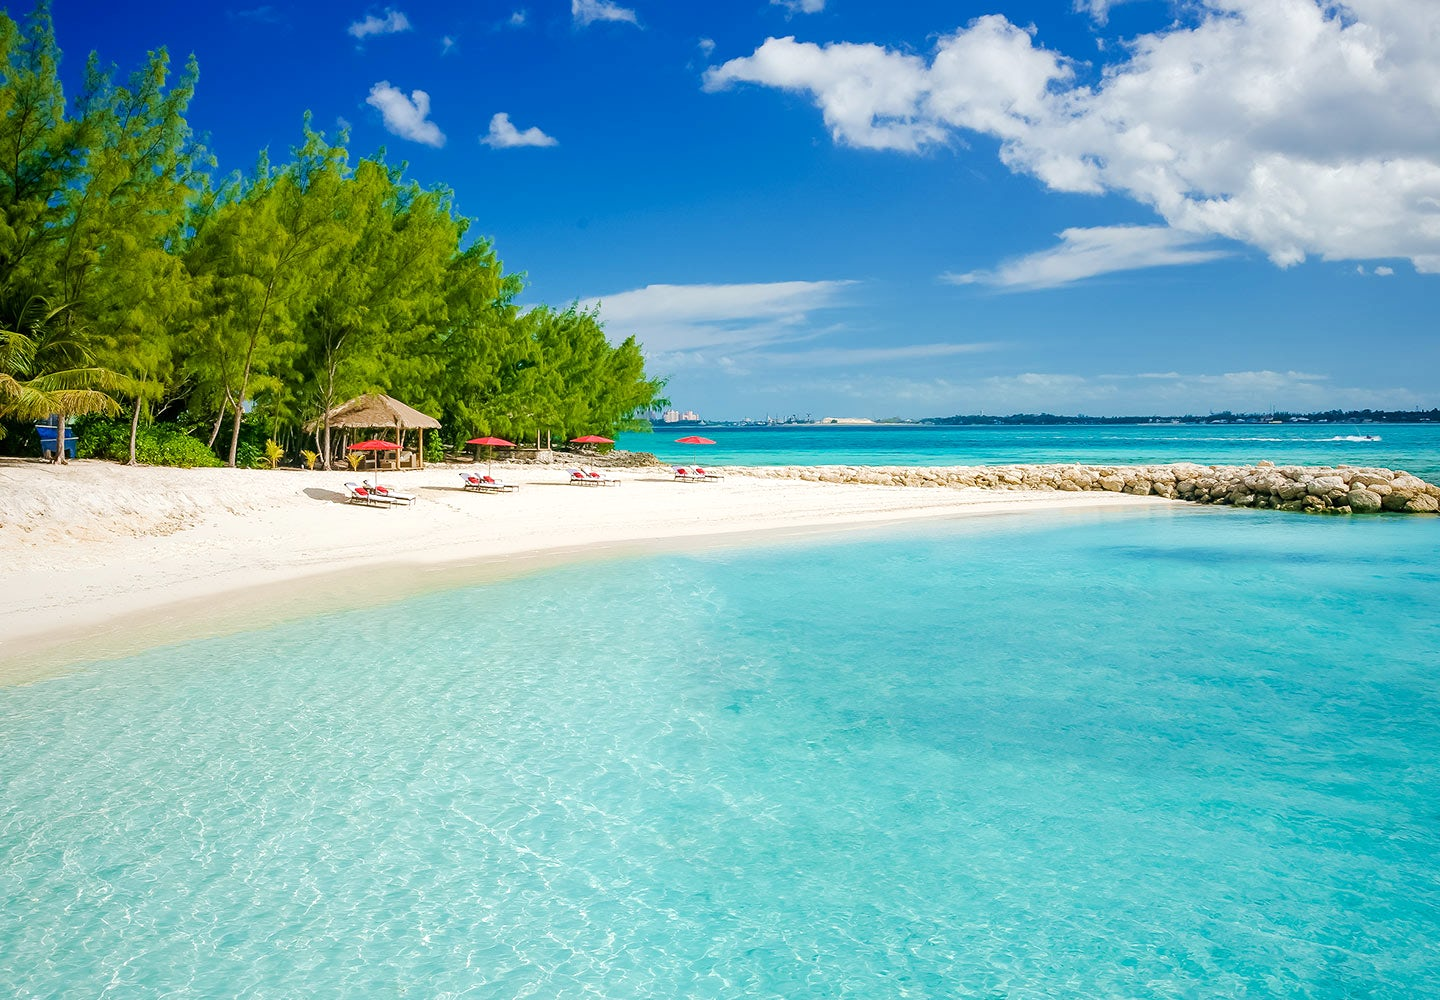 Sandals: The Bahamas